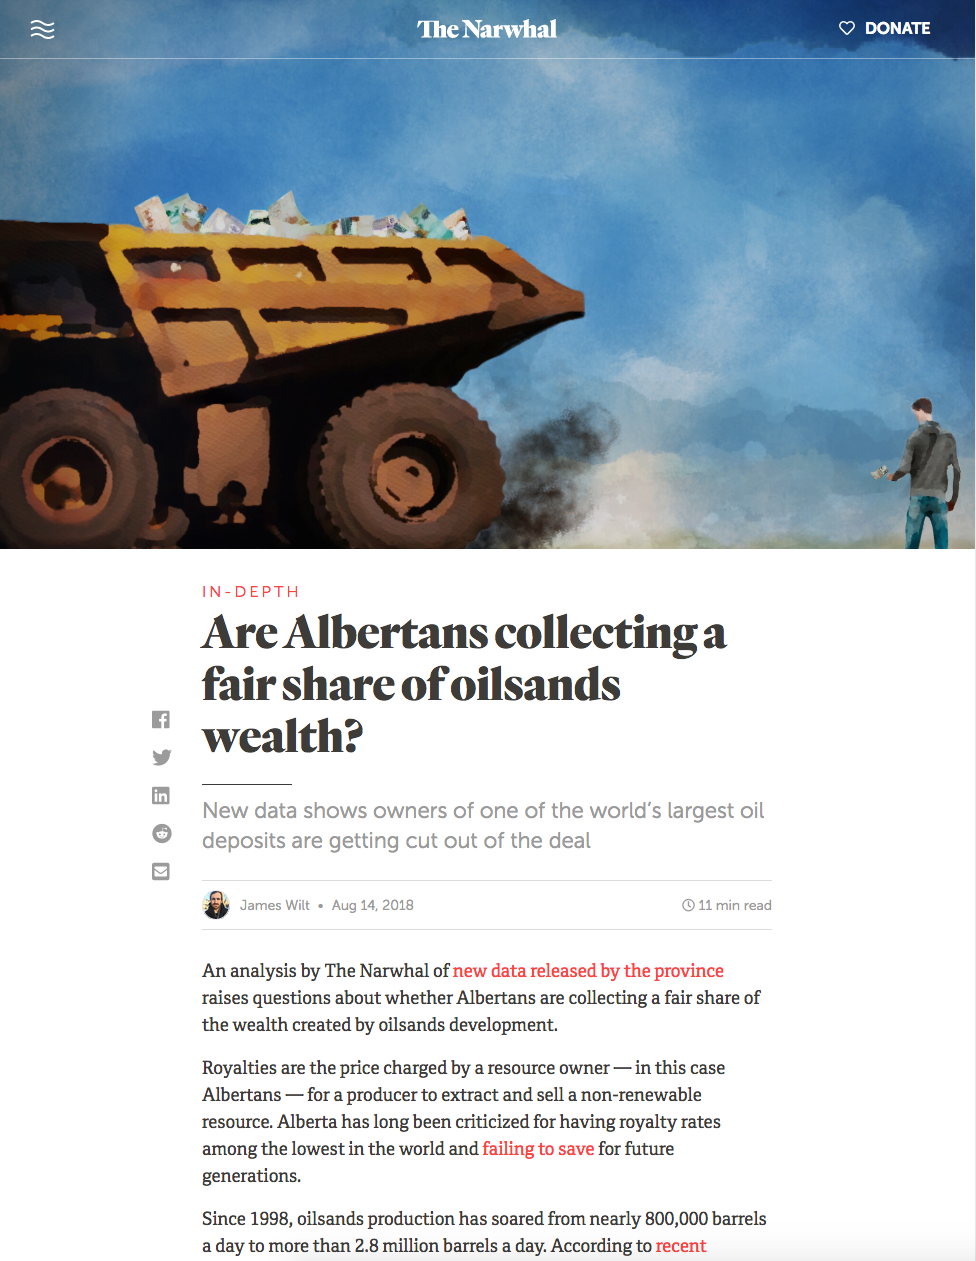 Are Albertans collecting a fair share of oilsands wealth?